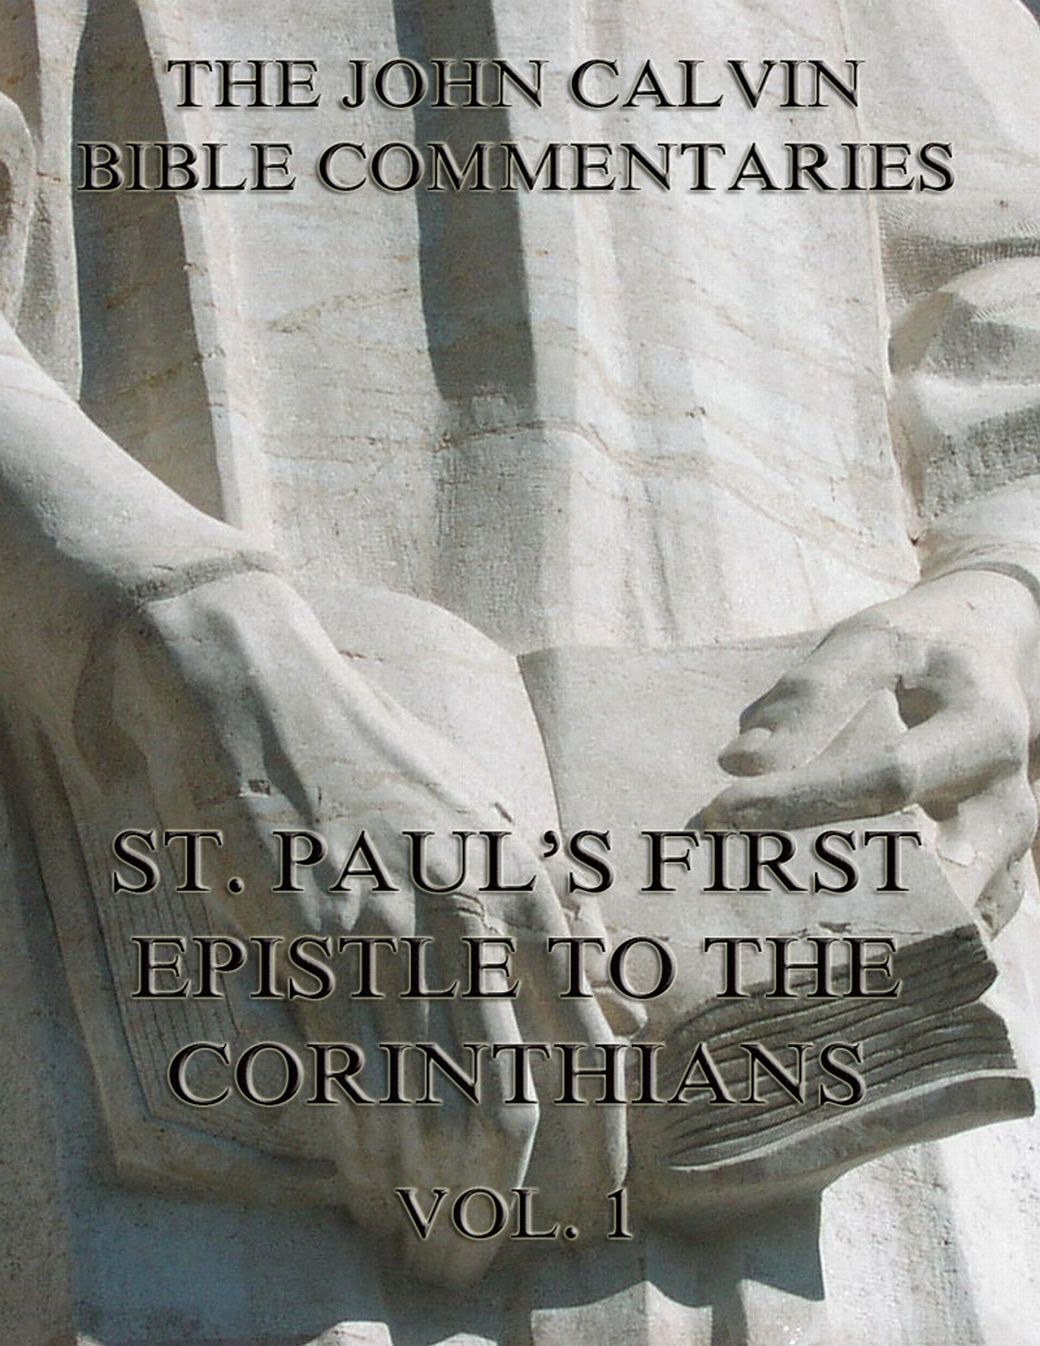 John Calvin John Calvin's Commentaries On St. Paul's First Epistle To The Corinthians Vol.1 james denney the second epistle to the corinthians volume 38